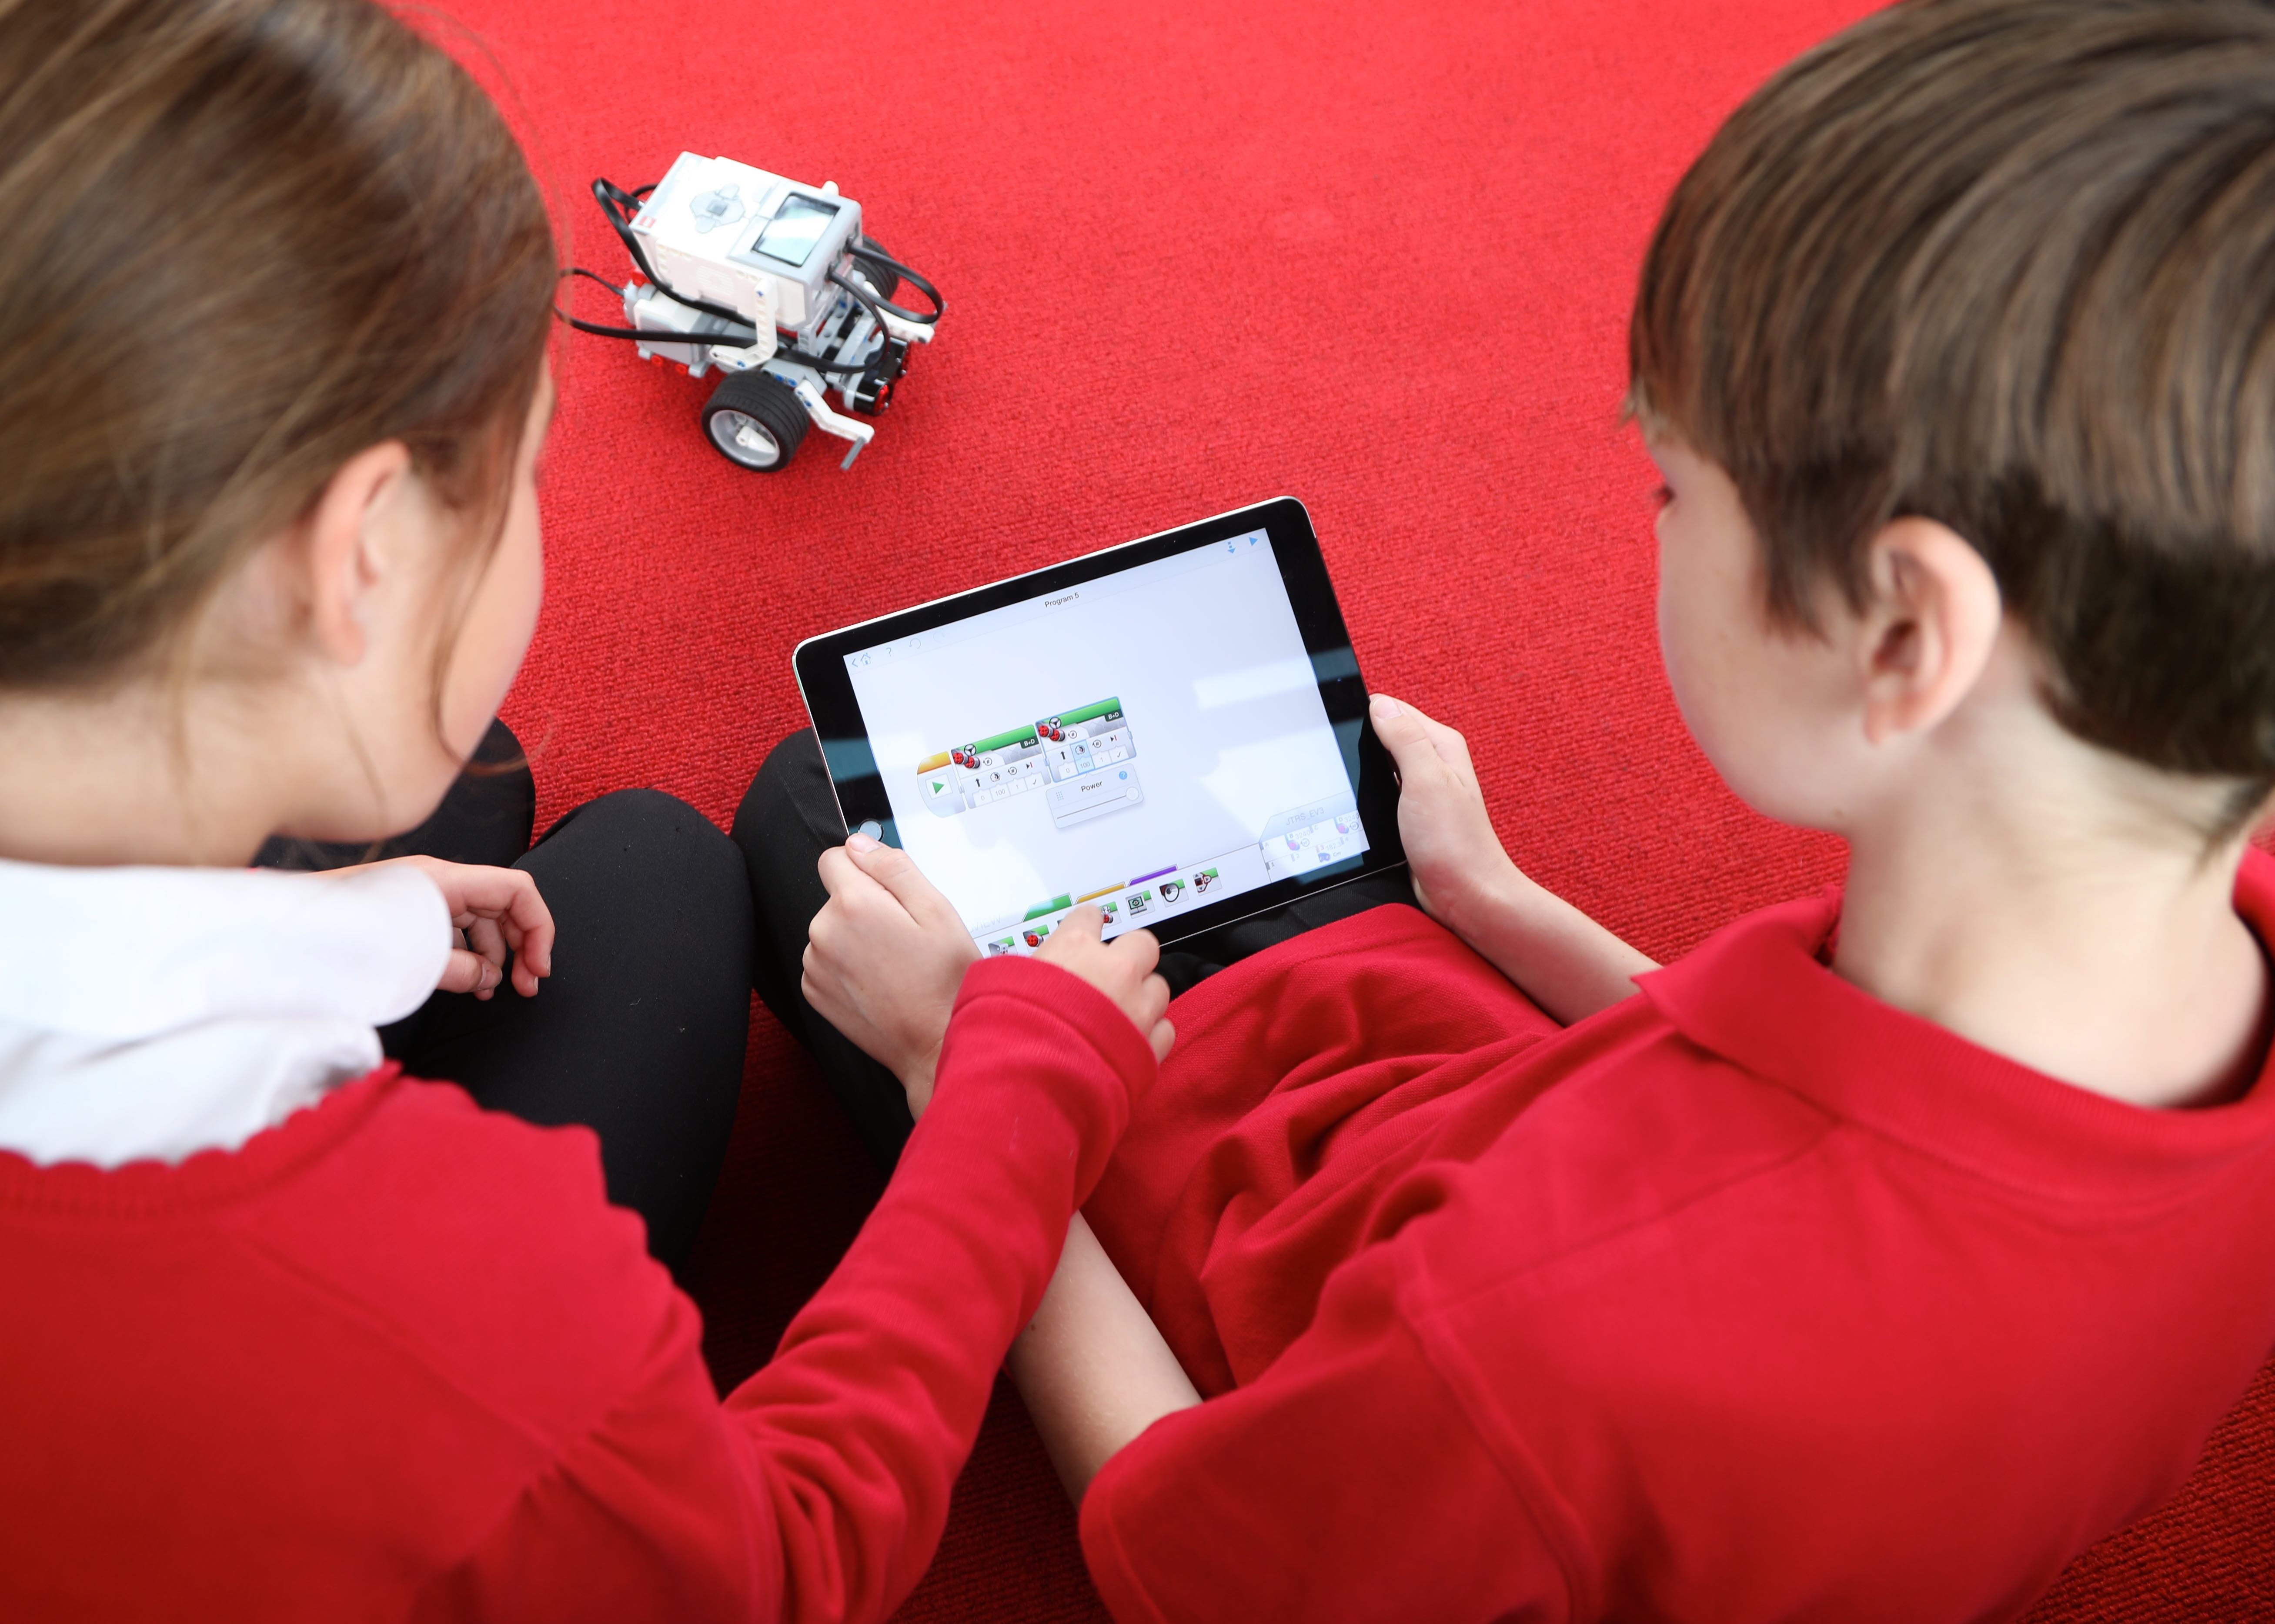 LEGO® Mindstorms EV3 education in school